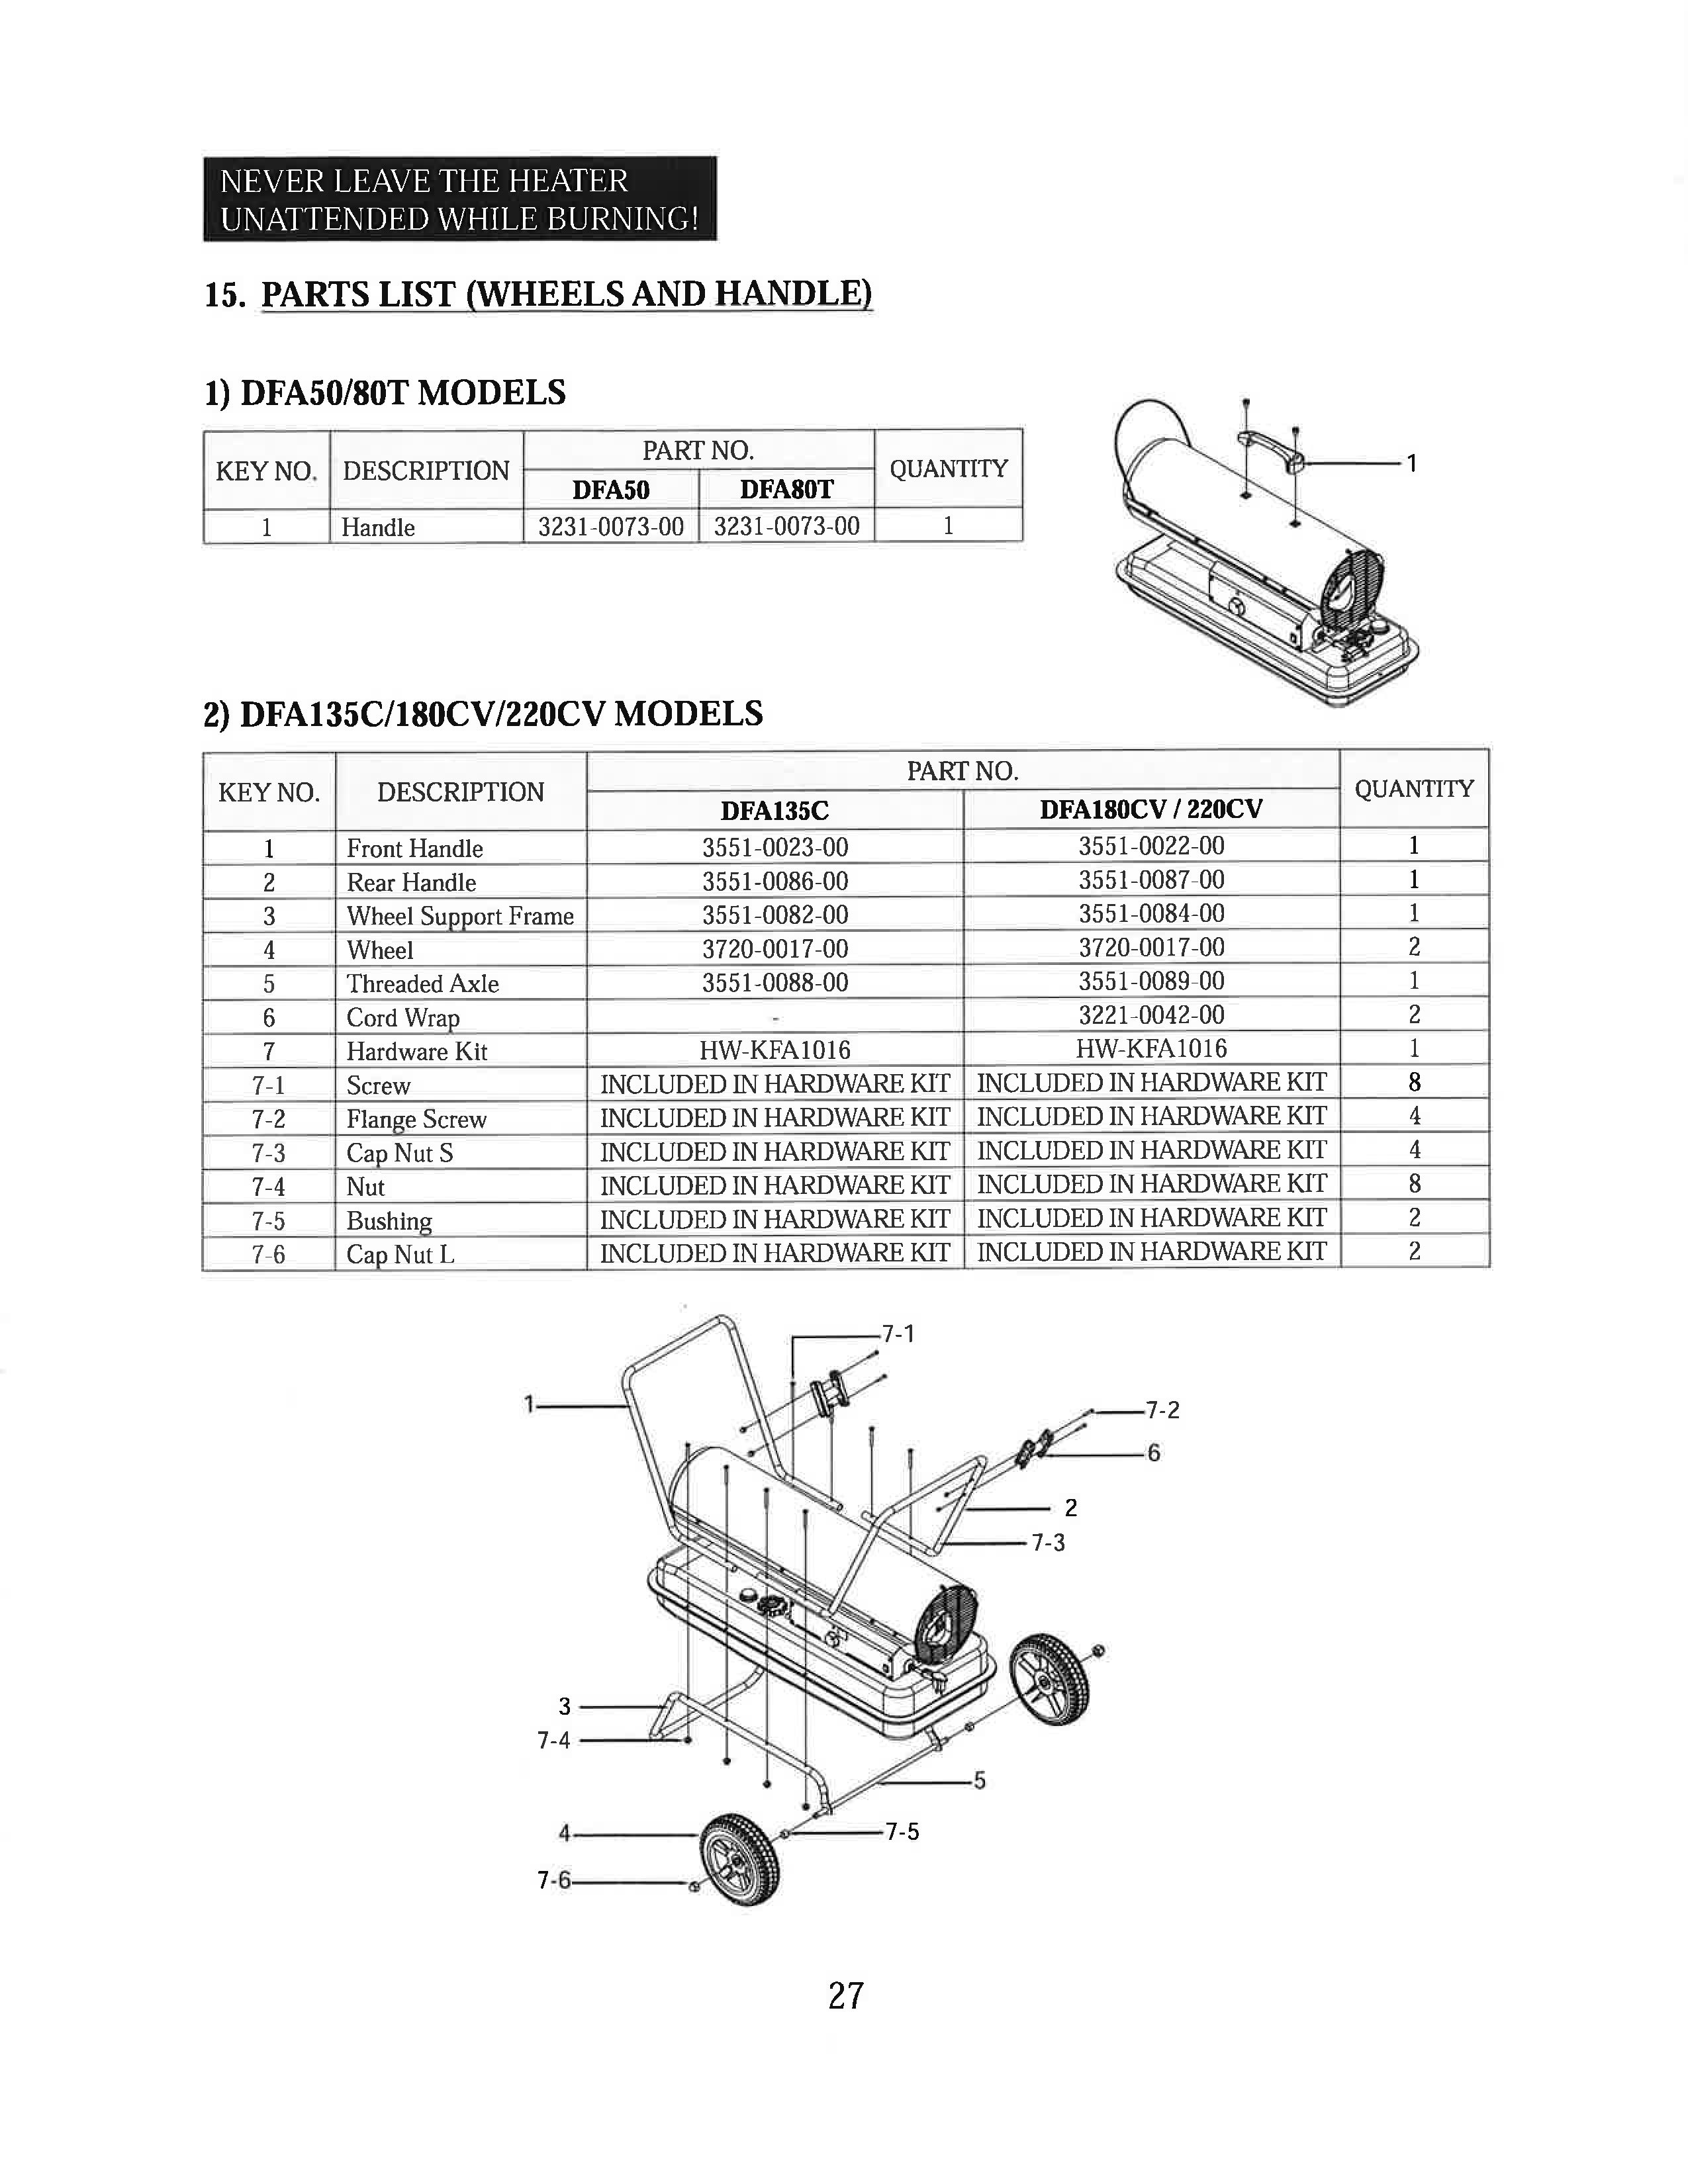 Cushman Wiring Diagram on golf cart battery diagram, cushman engine swap, cushman transmission diagram, cushman horn diagram, cushman fuel pump, cushman parts diagram, ezgo 36 volt battery diagram, cushman wiring parts, cushman gas golf cart wiring schematics, cushman cart model 898336 8410 diagram,